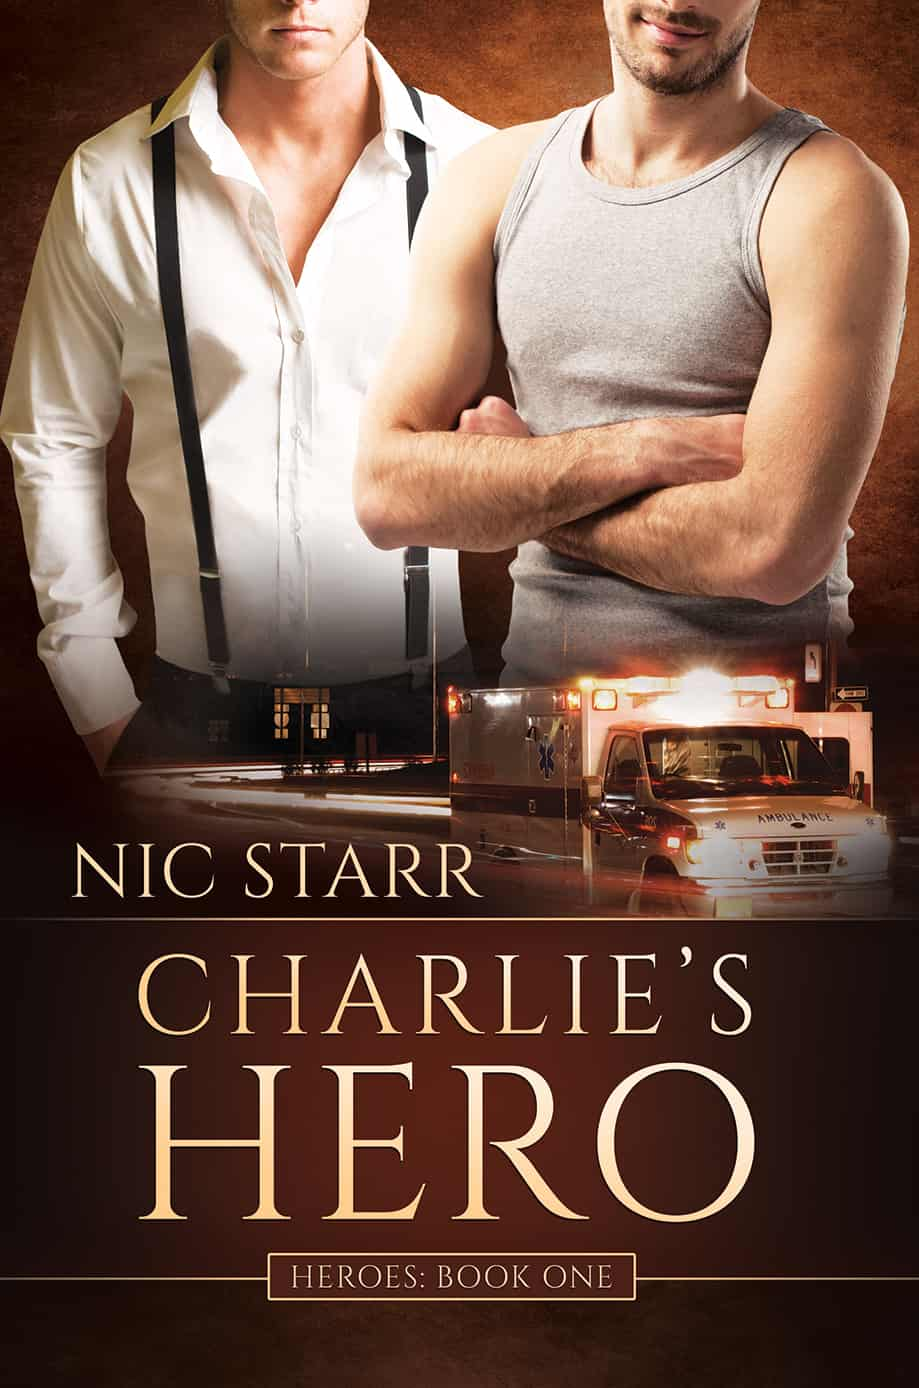 Blog Tour and Review: Charlie's Hero by Nic Starr